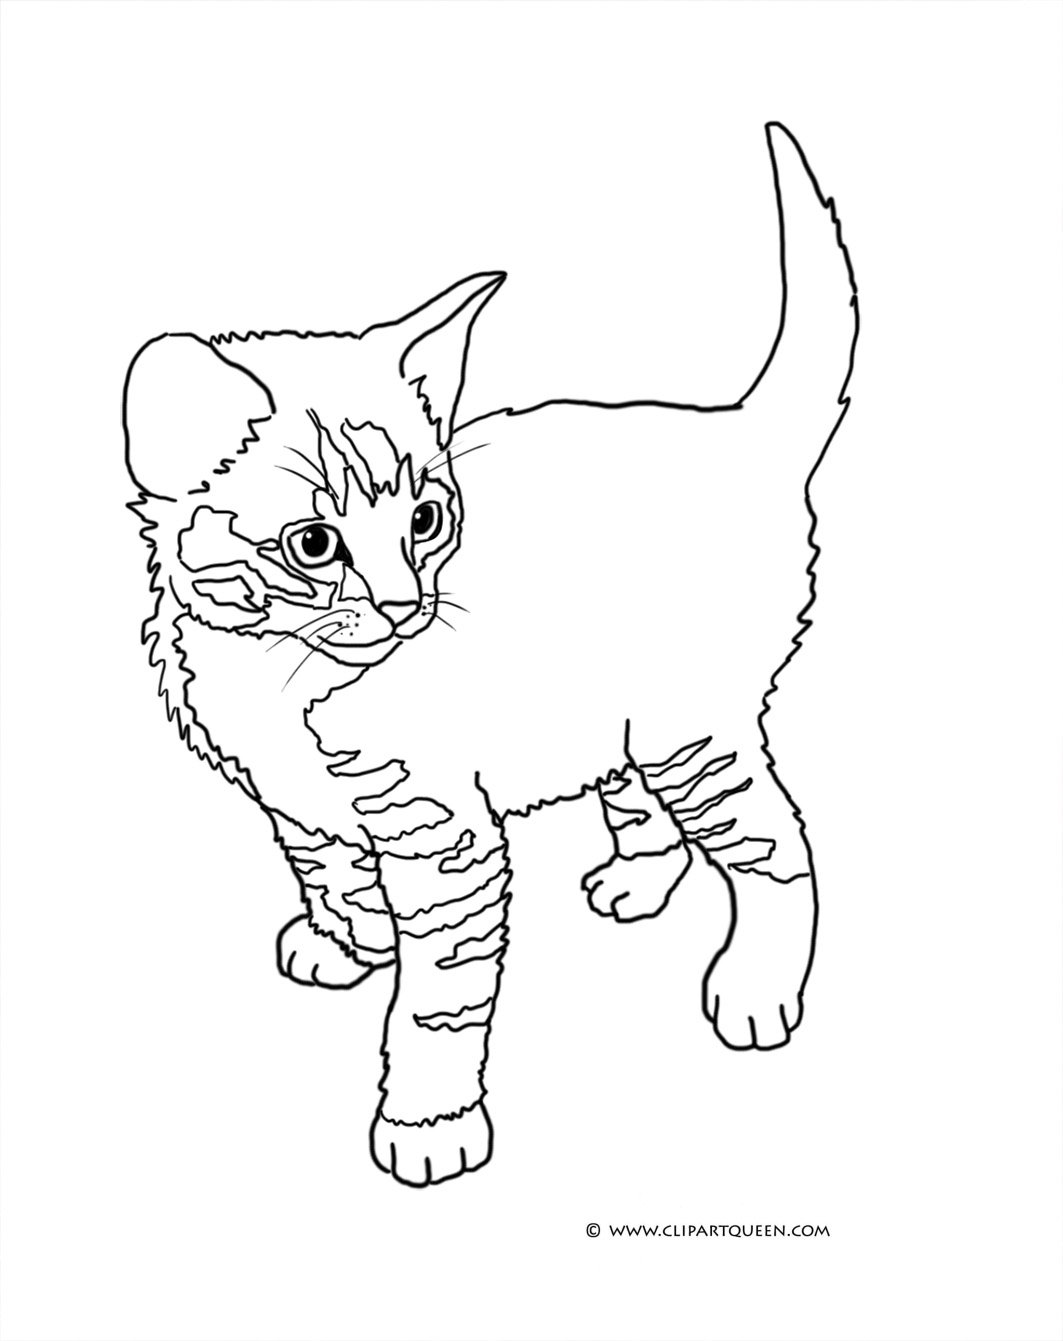 leopard coloring pages - cat coloring pages